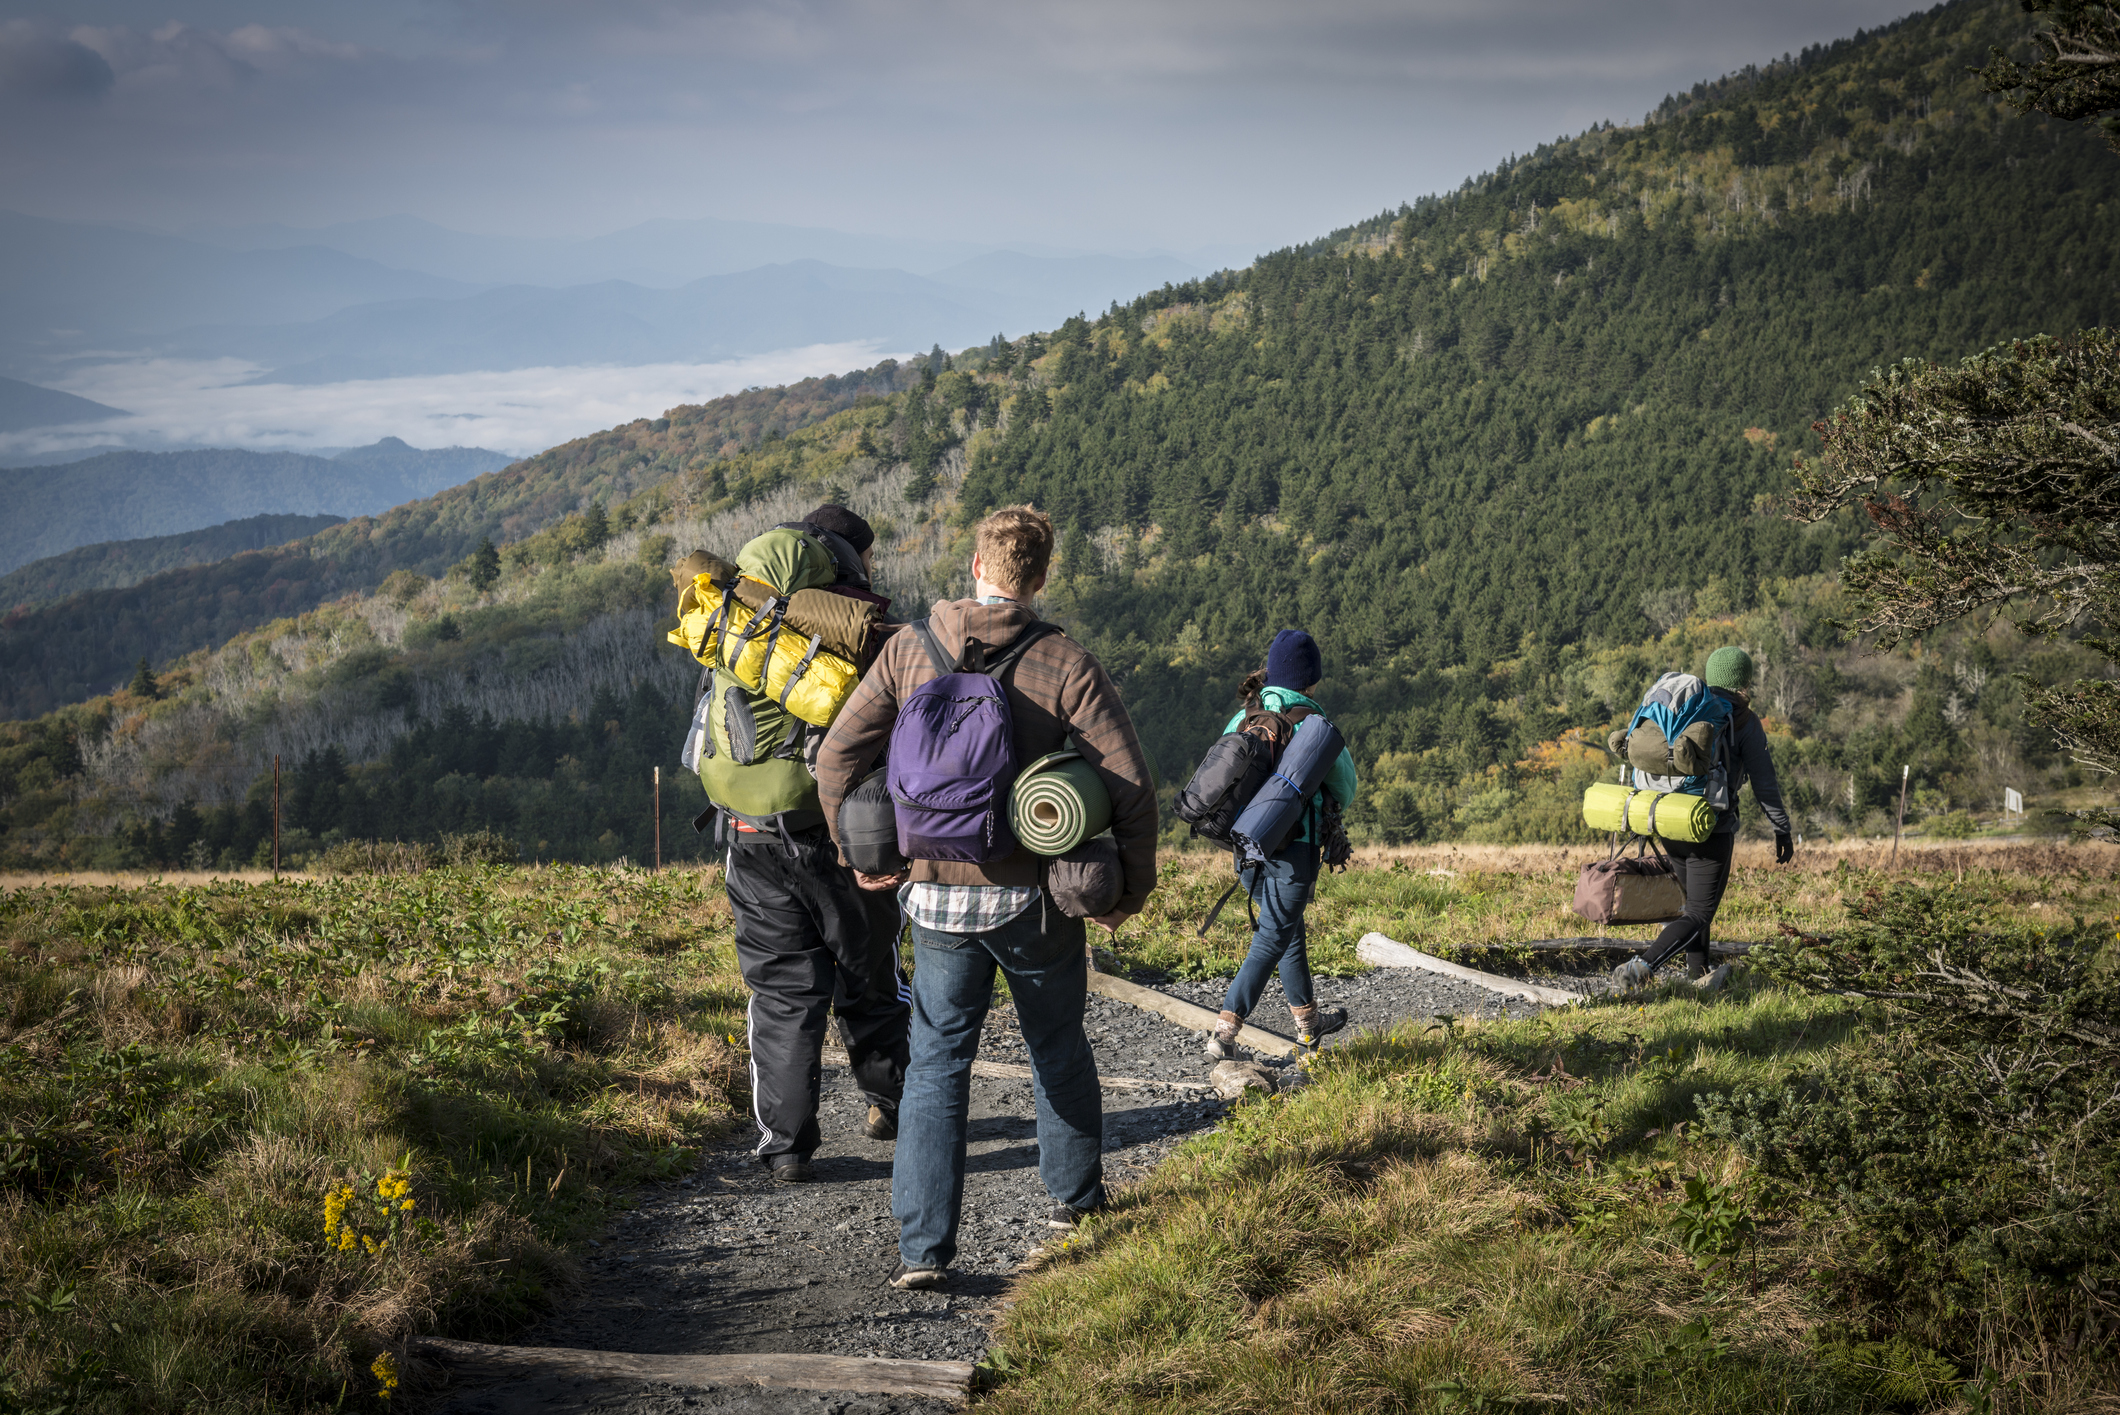 People walk on the Appalachian Trail after breaking camp on Roan Mountain. (Getty Images)